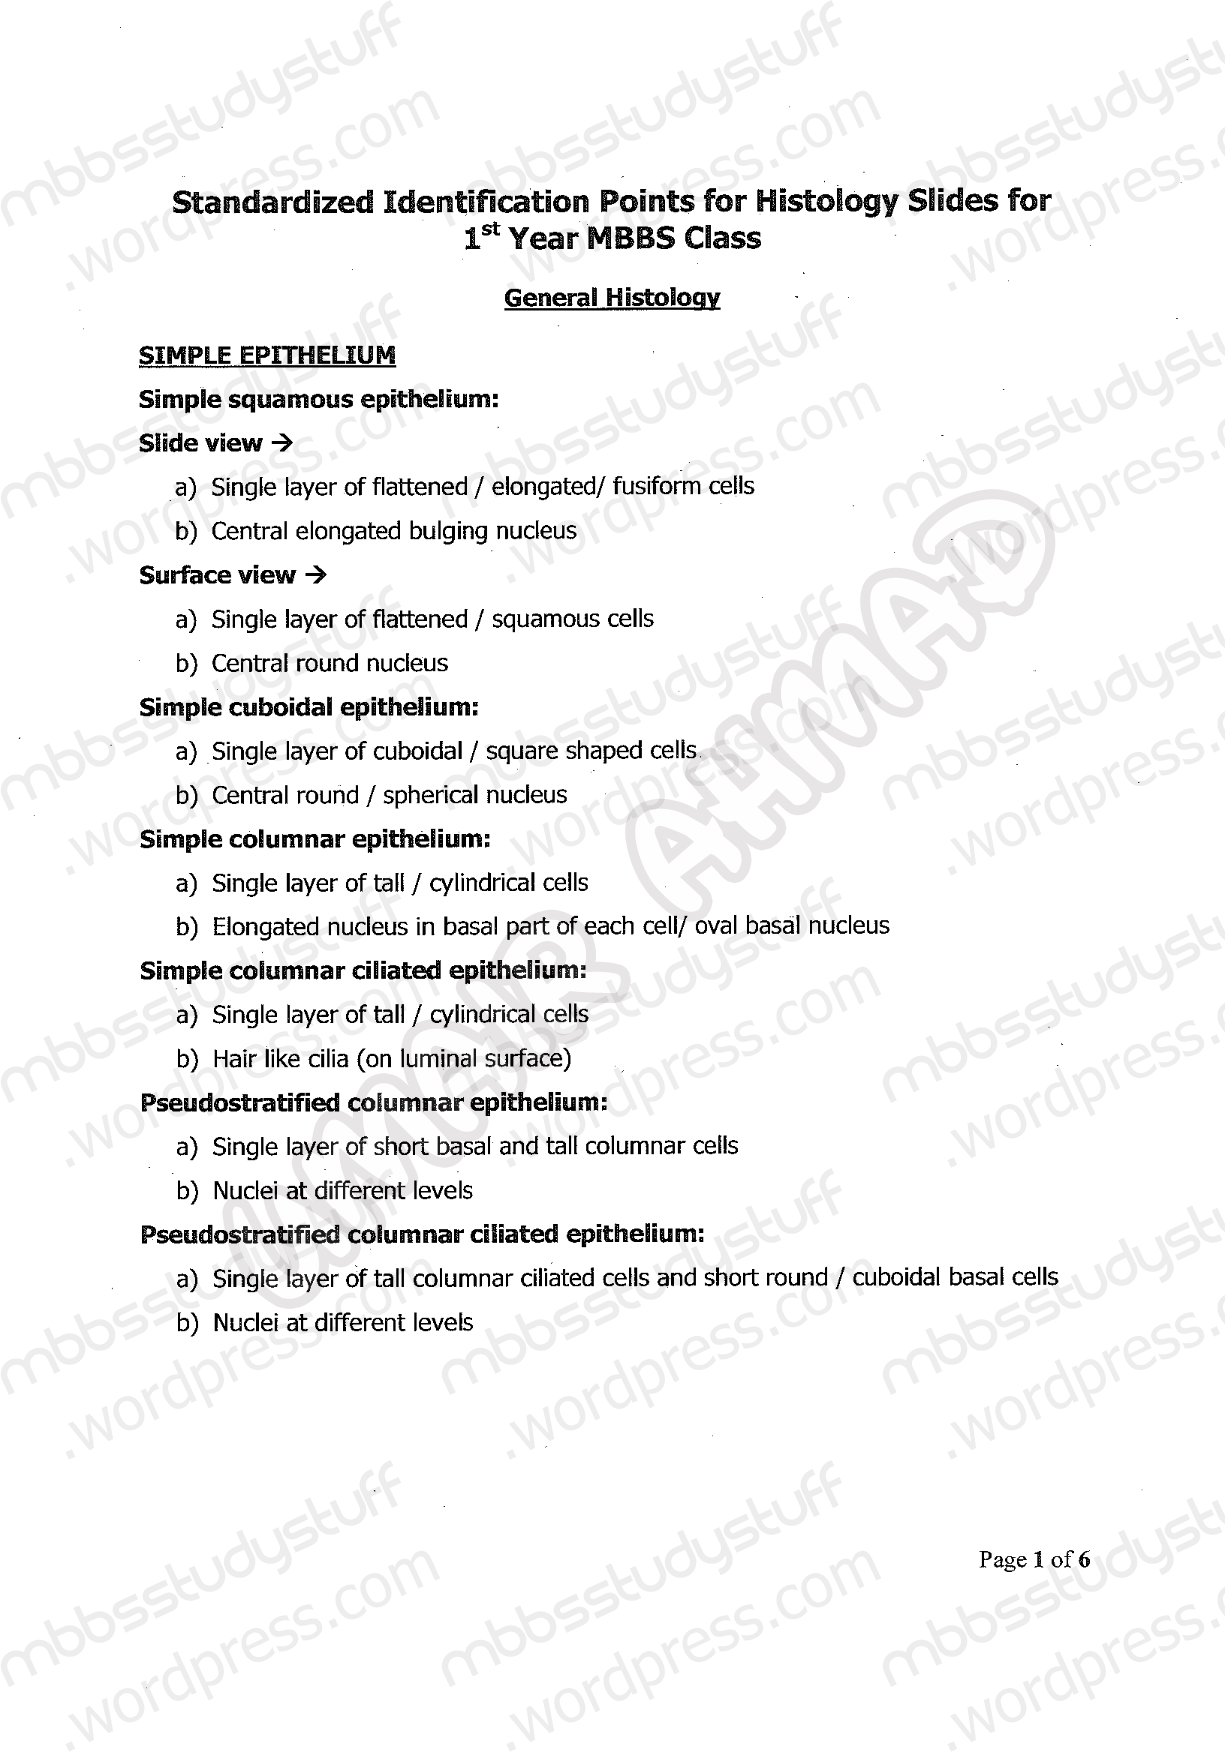 Histology Identification Points For 1st Year MBBS By UHS | MBBS ...